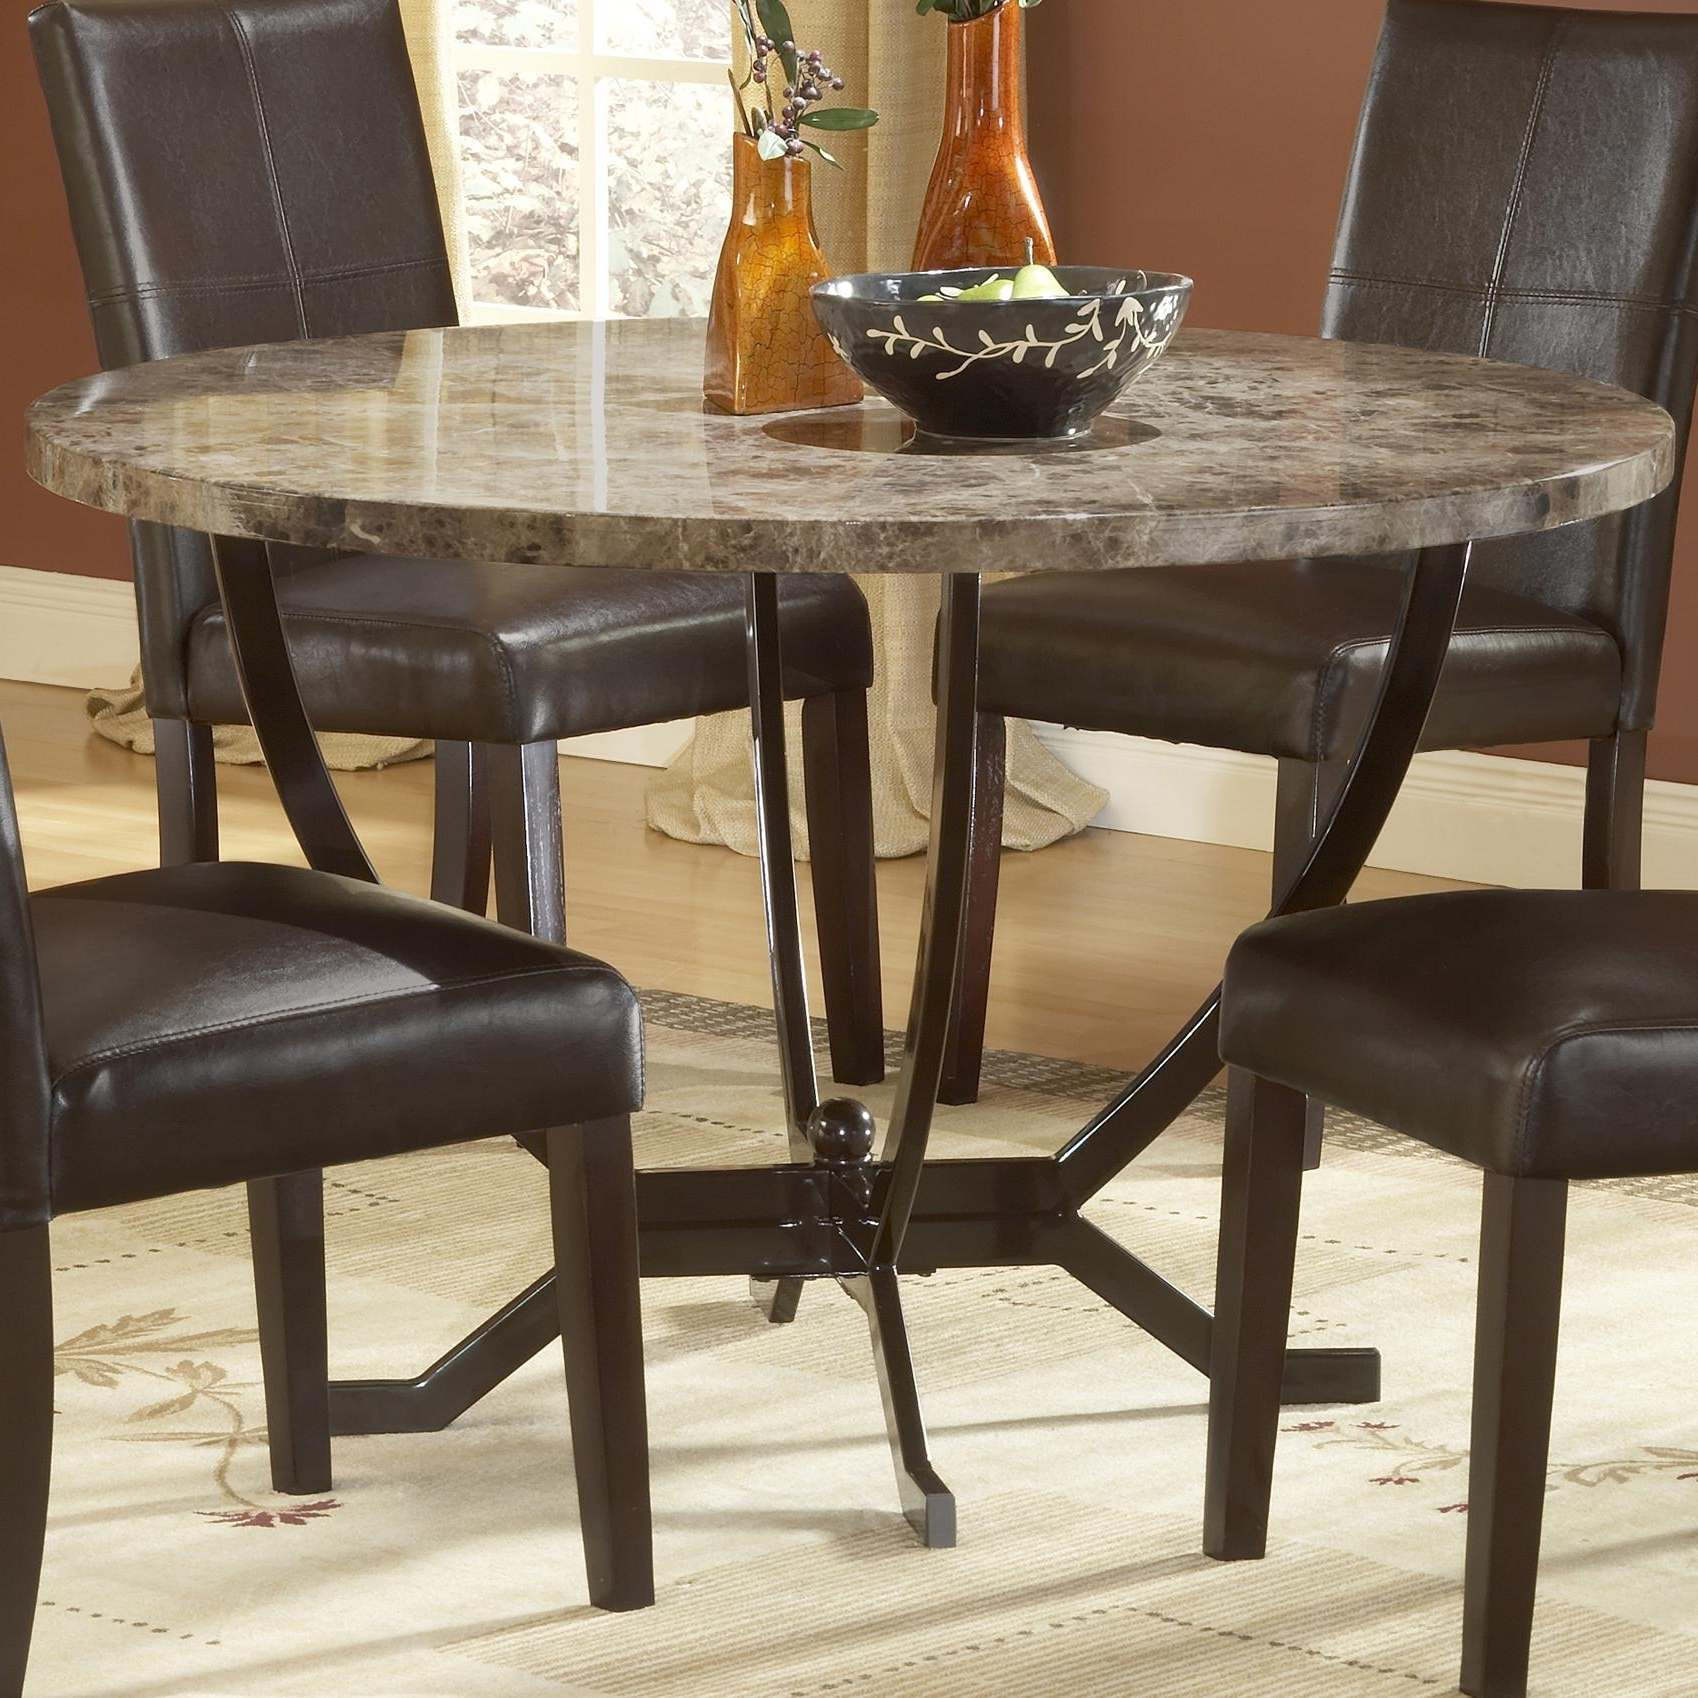 Lindy's Furniture Company With Regard To Well Known Lindy Espresso Rectangle Dining Tables (View 15 of 25)